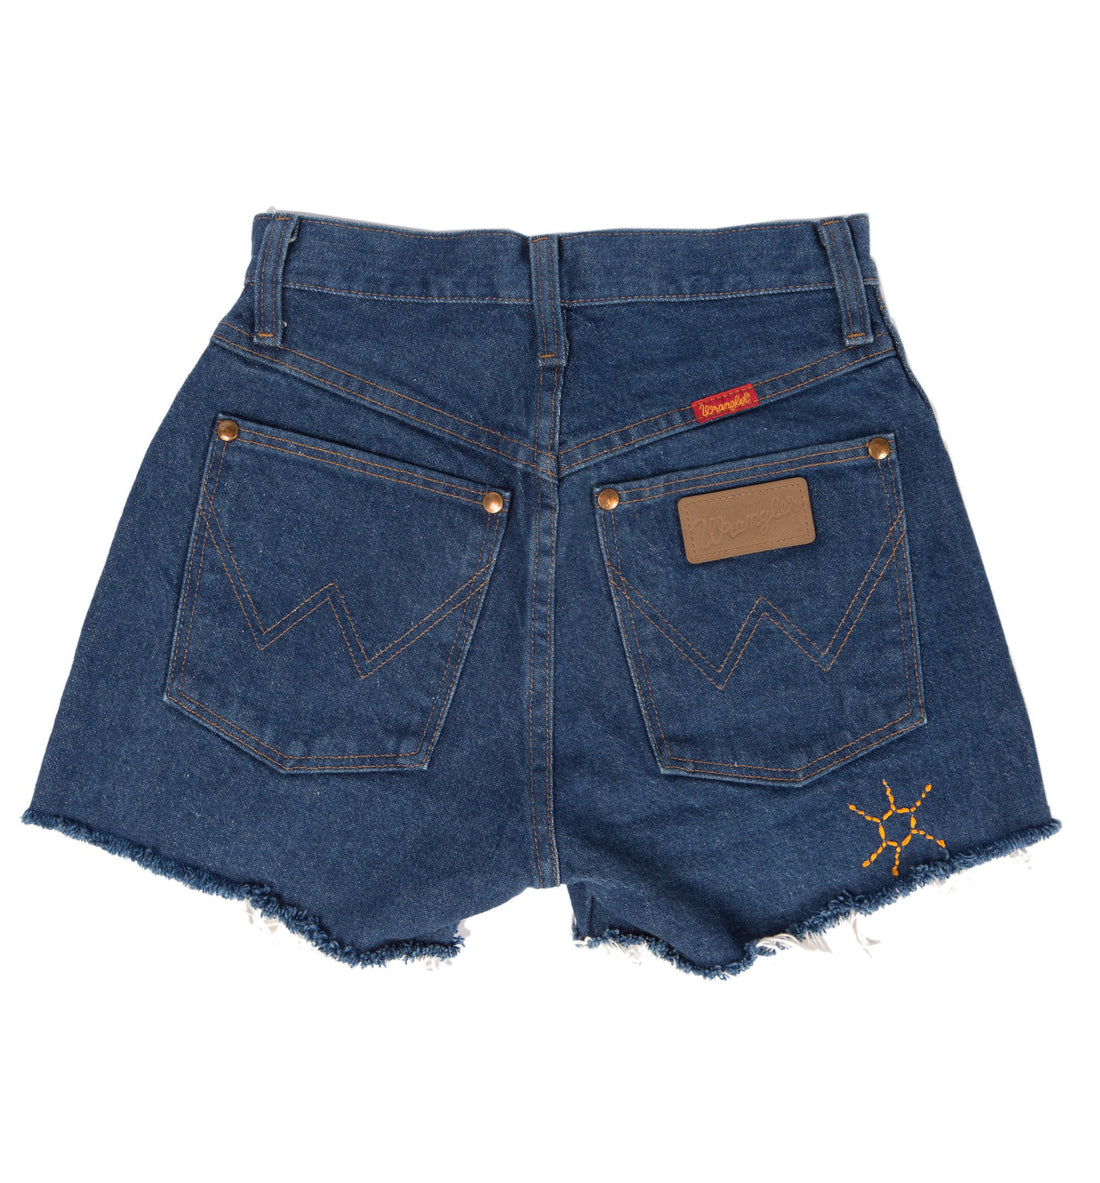 Vintage Dark Wash Wrangler Cutoffs w/ Custom Embroidery, 26 - Vintage: Women's - Iron and Resin